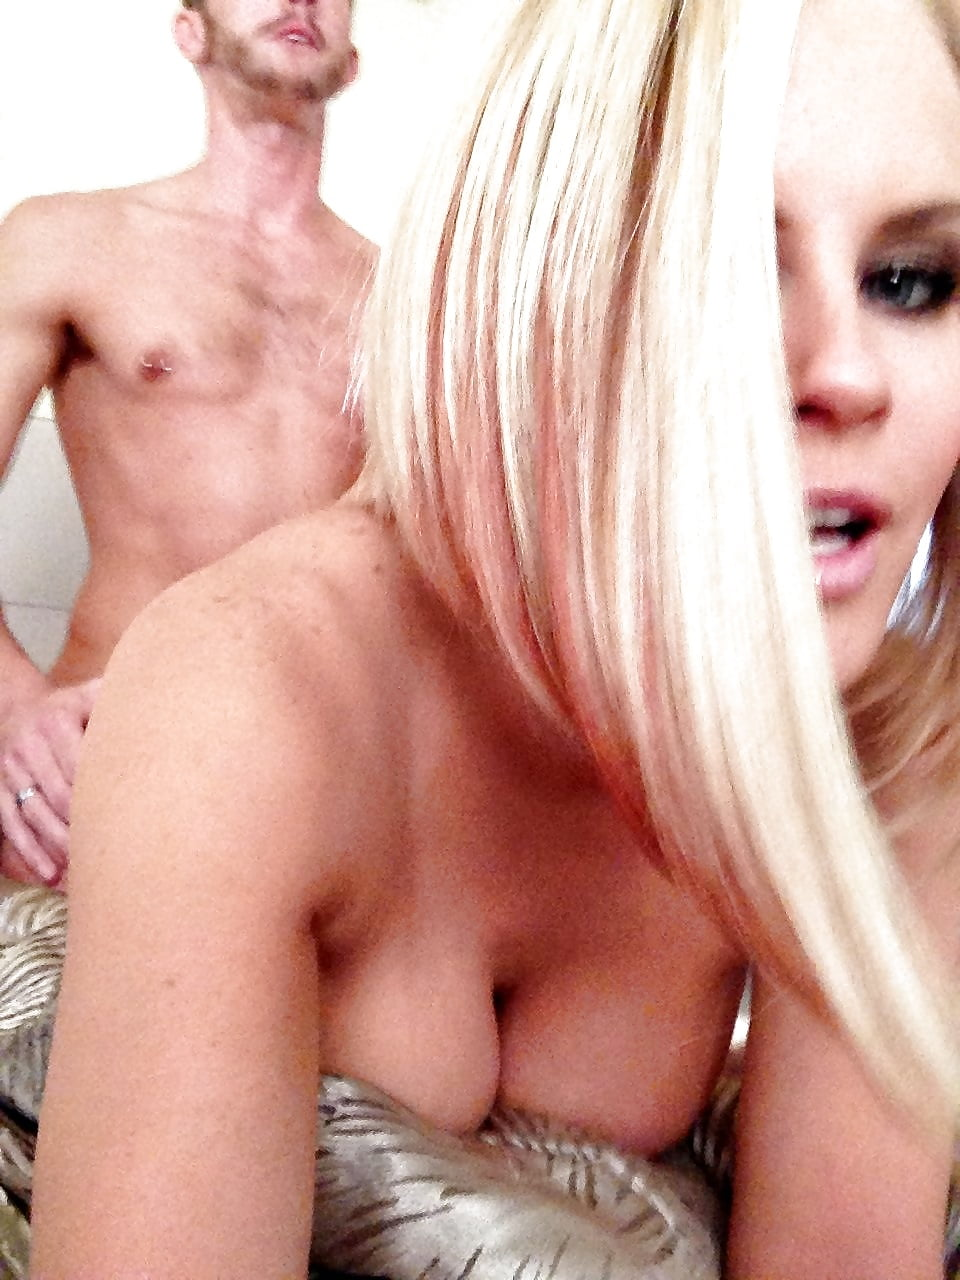 Valuable nudes jenny mccarthy pity, that can